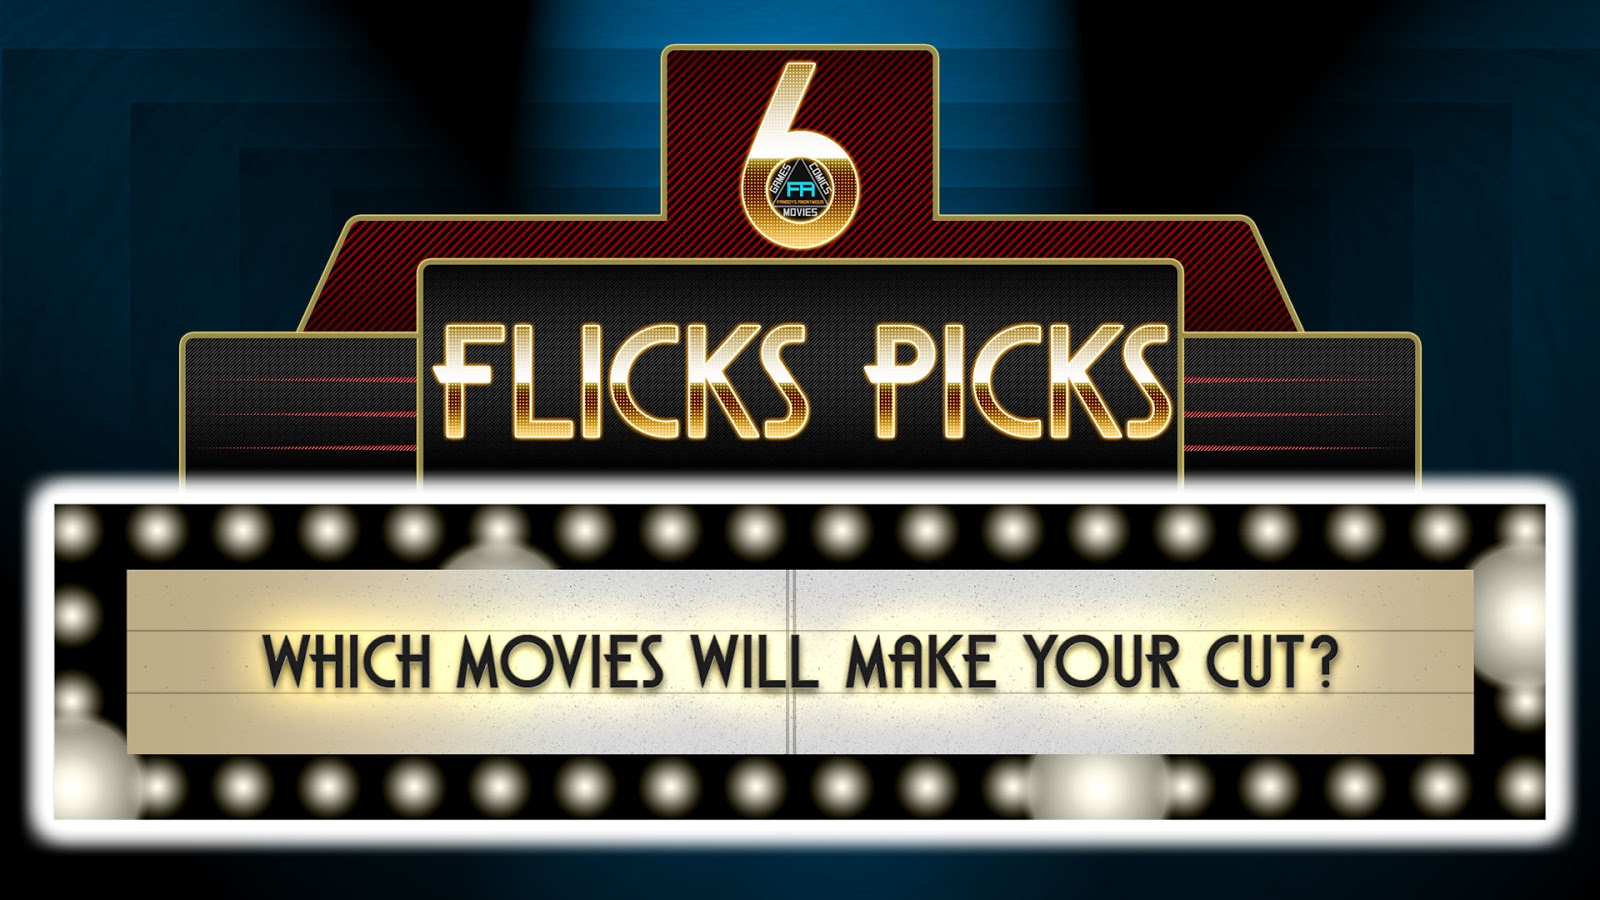 What movies are coming out TheMonth 2016 6 Flicks Picks